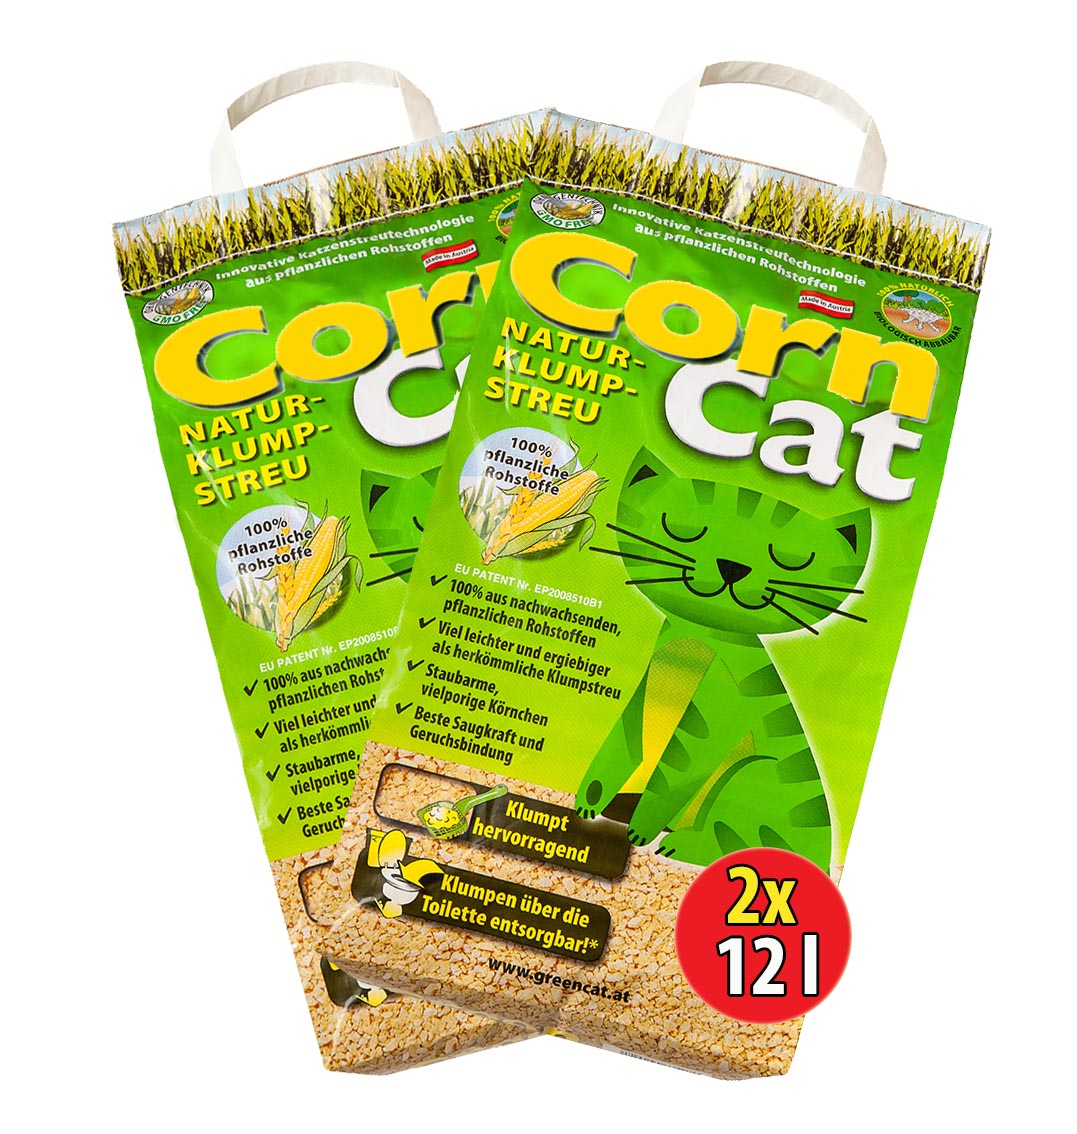 corncat naturklumpstreu ko plus green cat s katzenstreu best streu greencat ebay. Black Bedroom Furniture Sets. Home Design Ideas